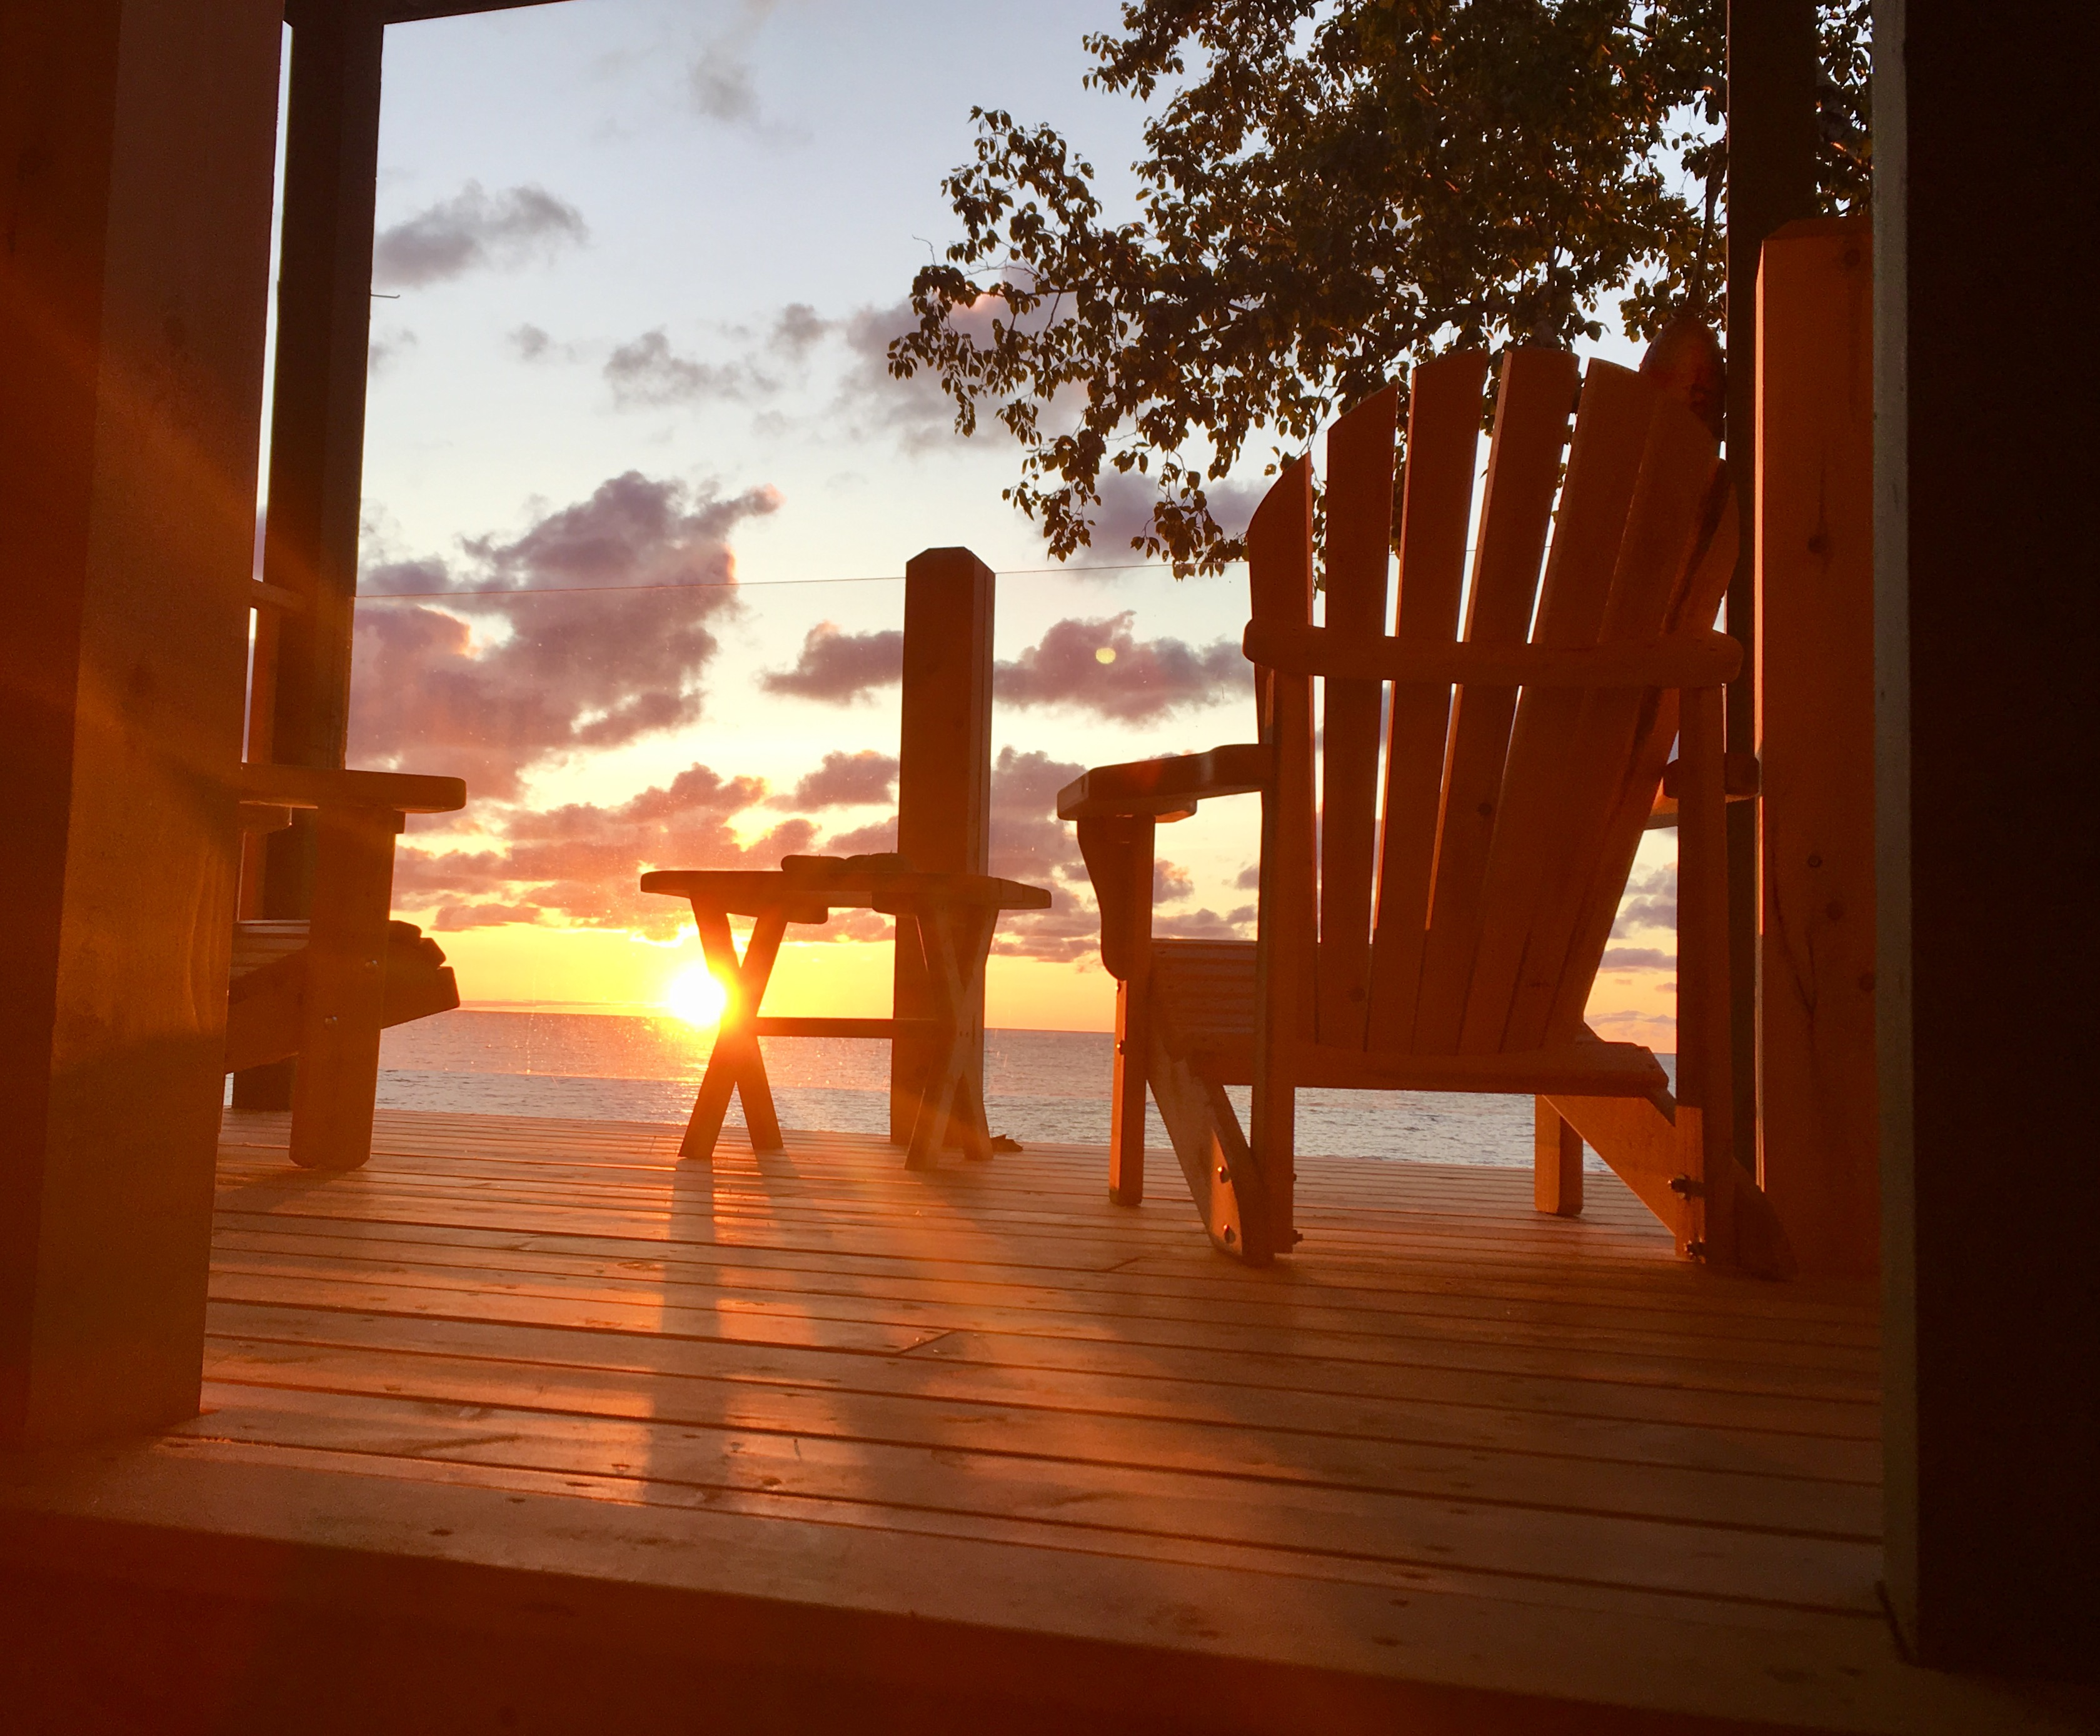 Sunrise on the deck